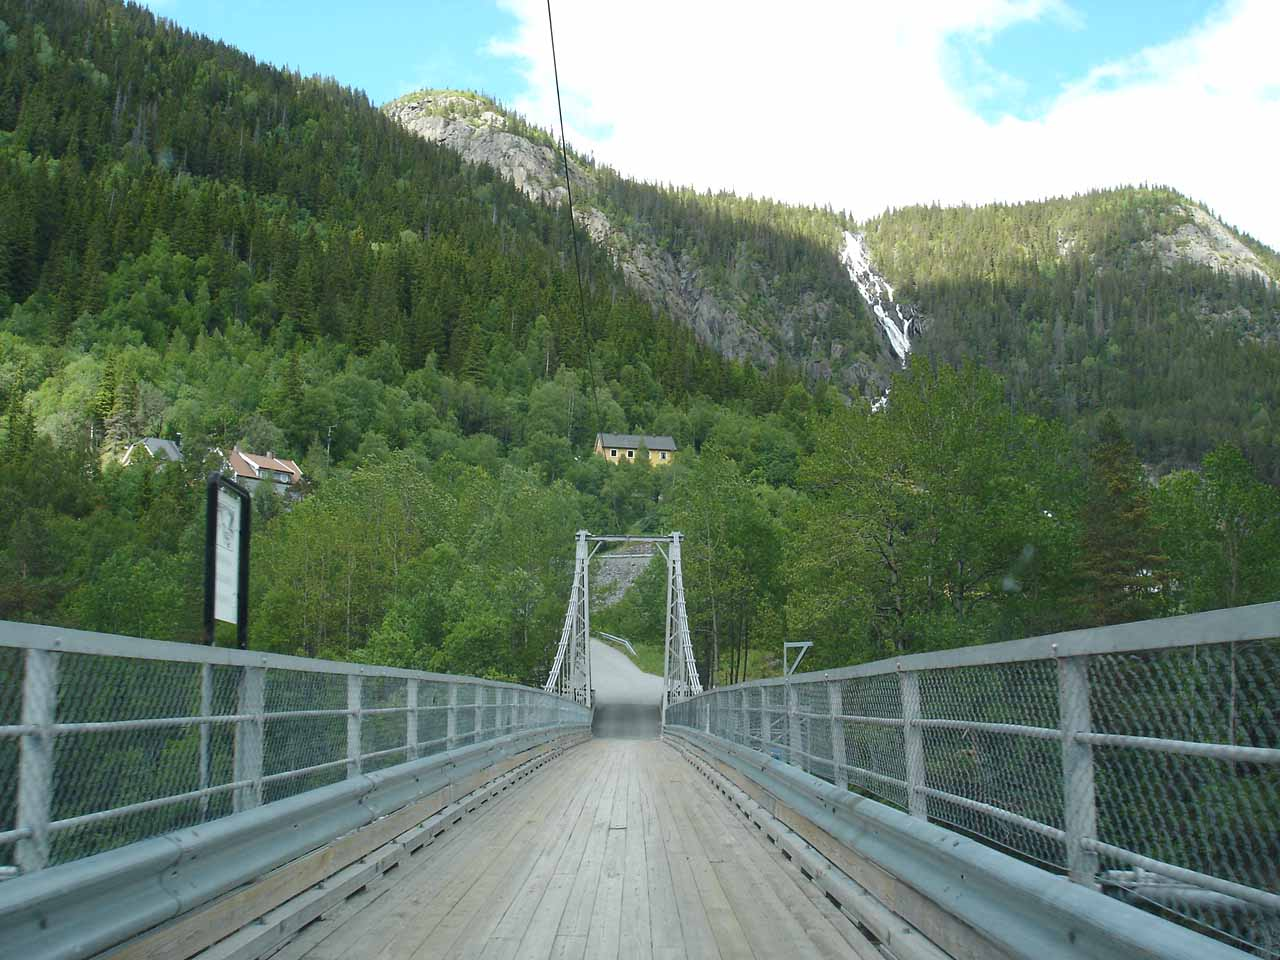 This narrow bridge was a pretty scary bridge to drive as we went between the Vemork Power Station and the town of Rjukan